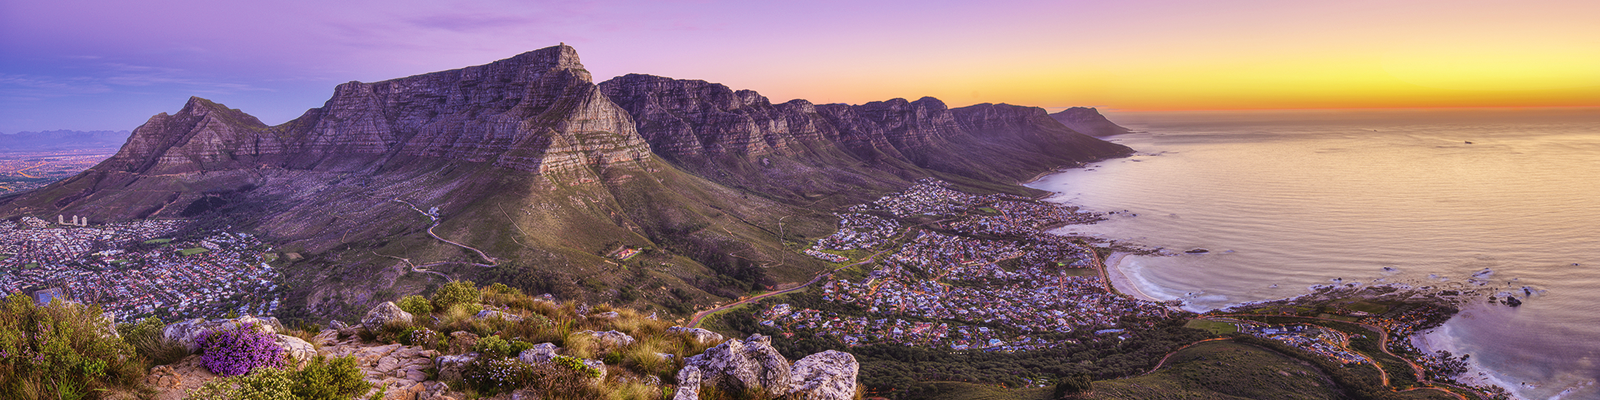 Let's get adventurous in exciting Cape Town!